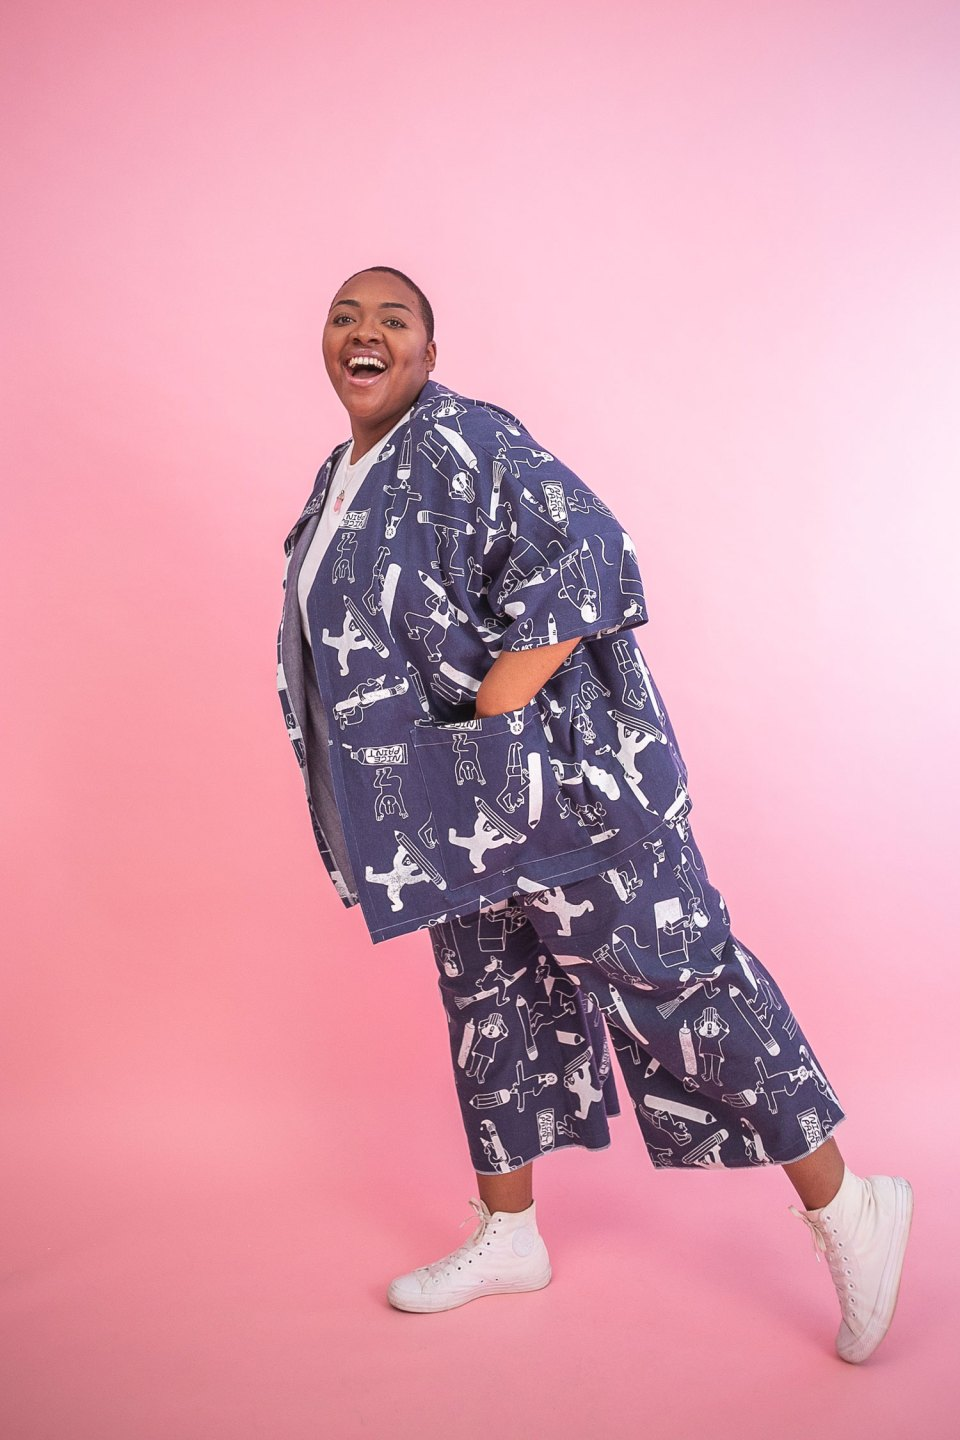 Nyome wears the YUK FUN Artist Suit in size XL